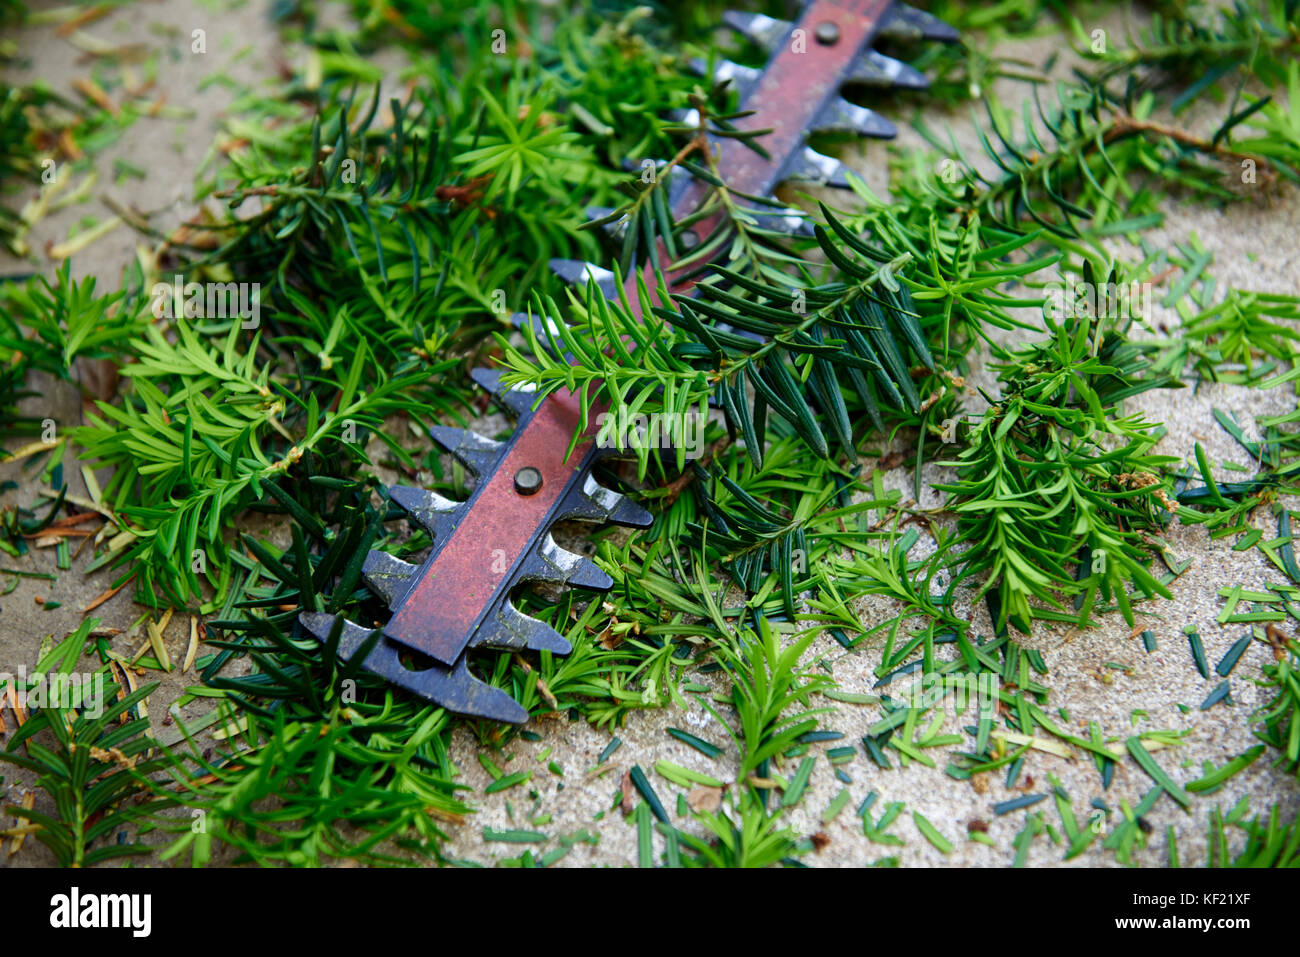 After the yard work, yew bush hedge trimmings with the electric hedge trimmer and gloves - Stock Image